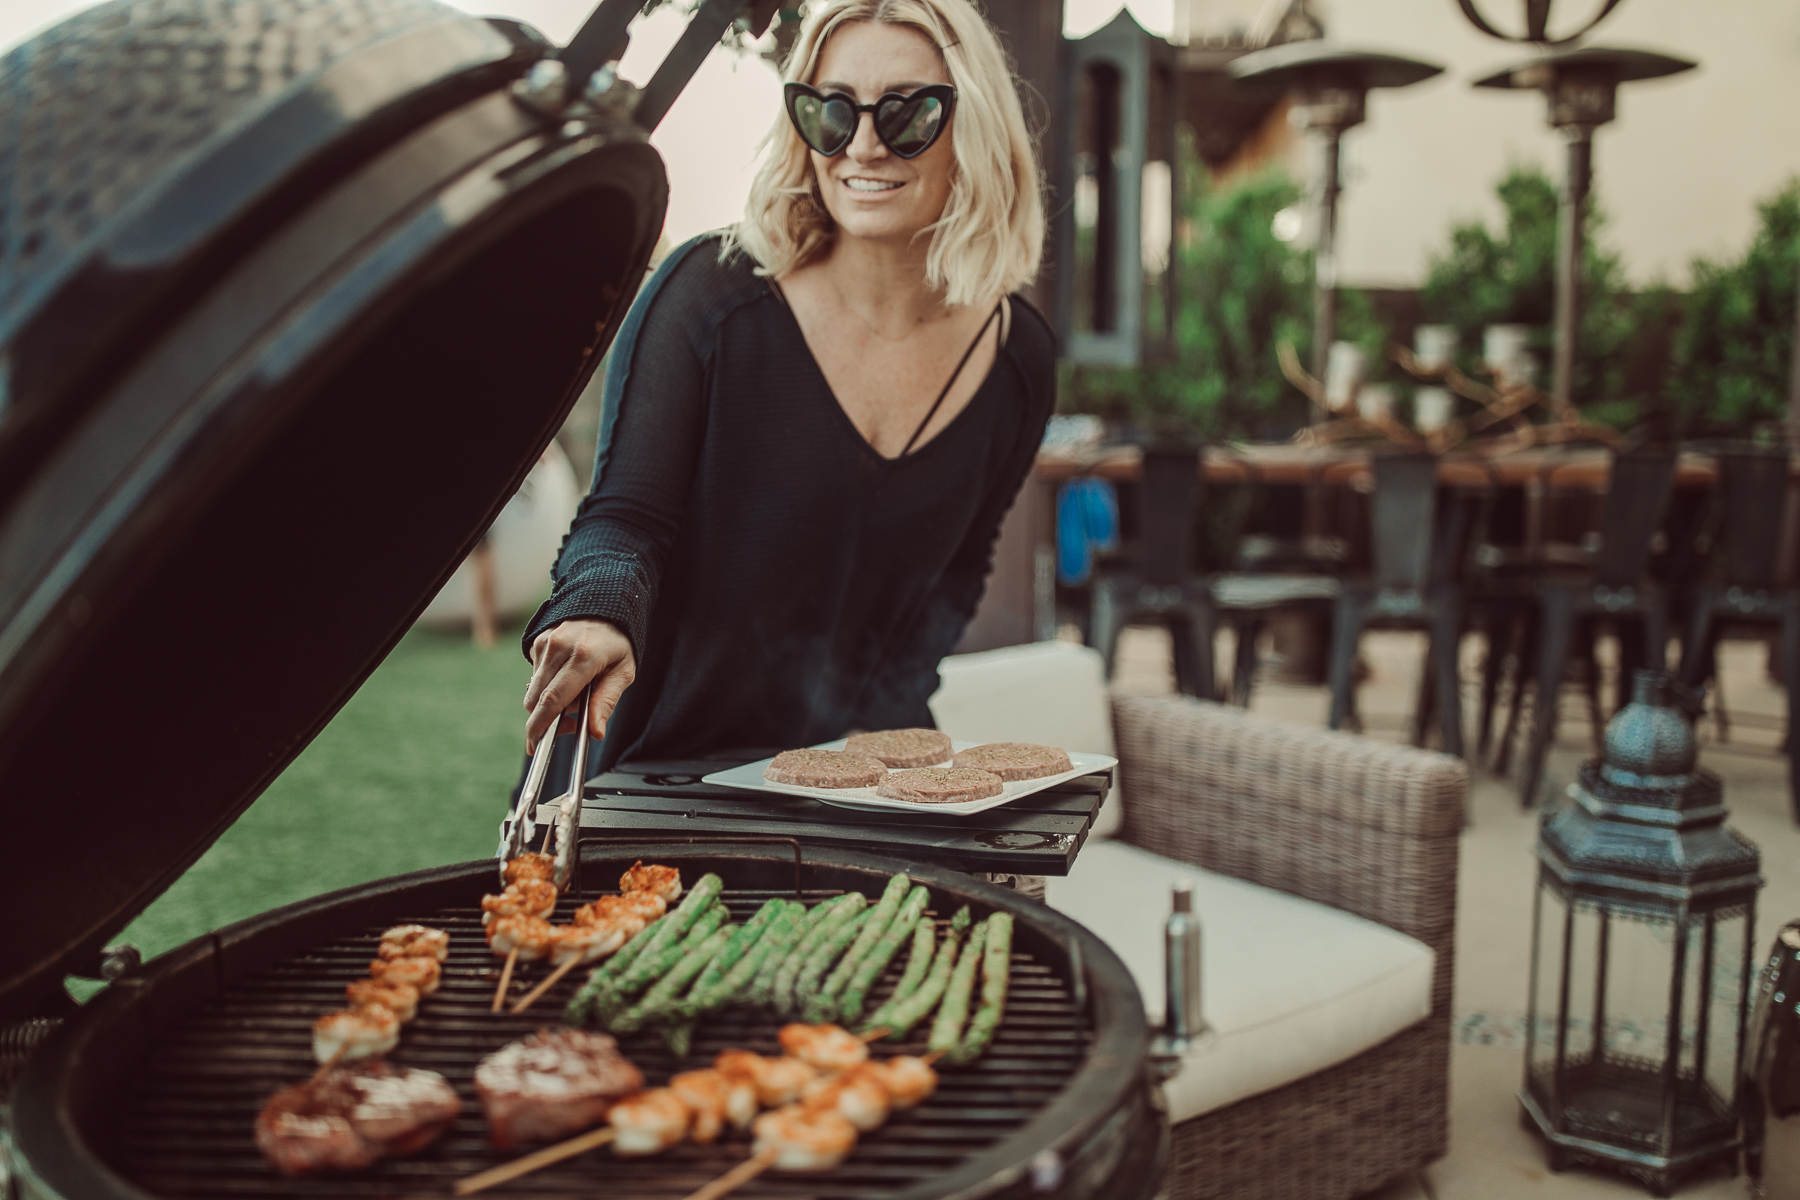 woman cooking on the grill